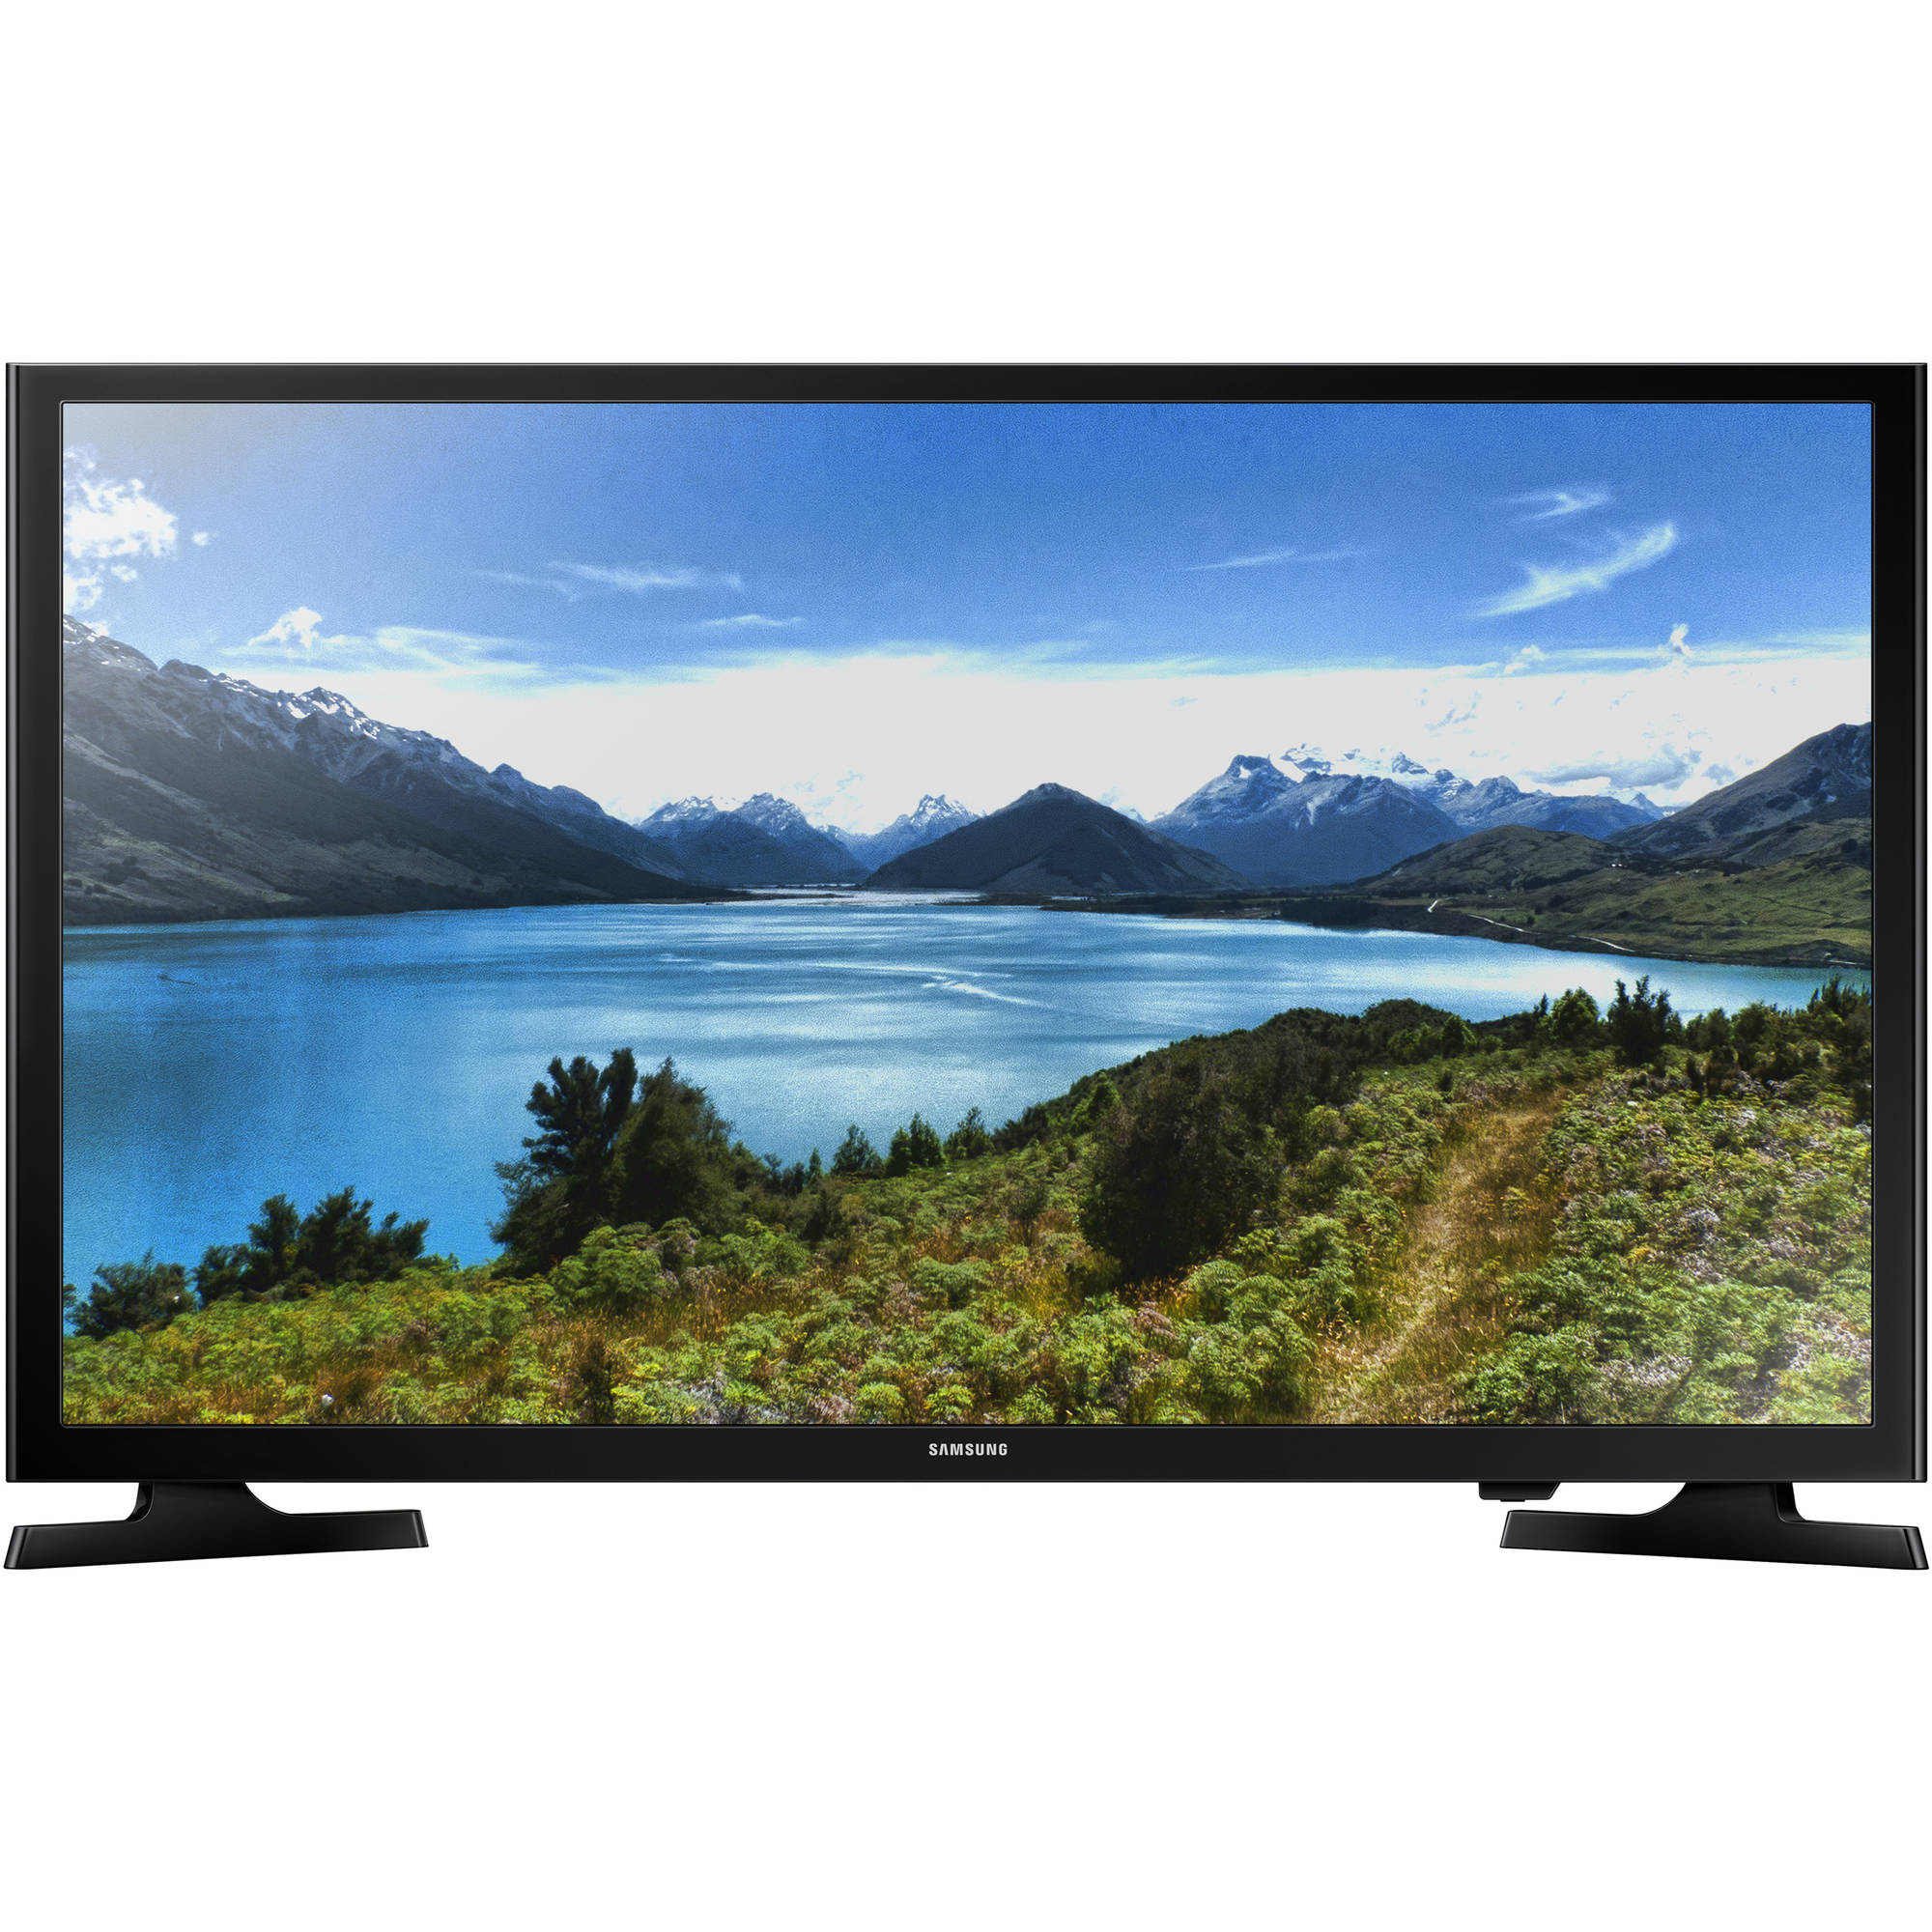 "SAMSUNG   32"" 4500 Series - Full HD LED TV - 720p, 60MR (Model#: UN32J450)"